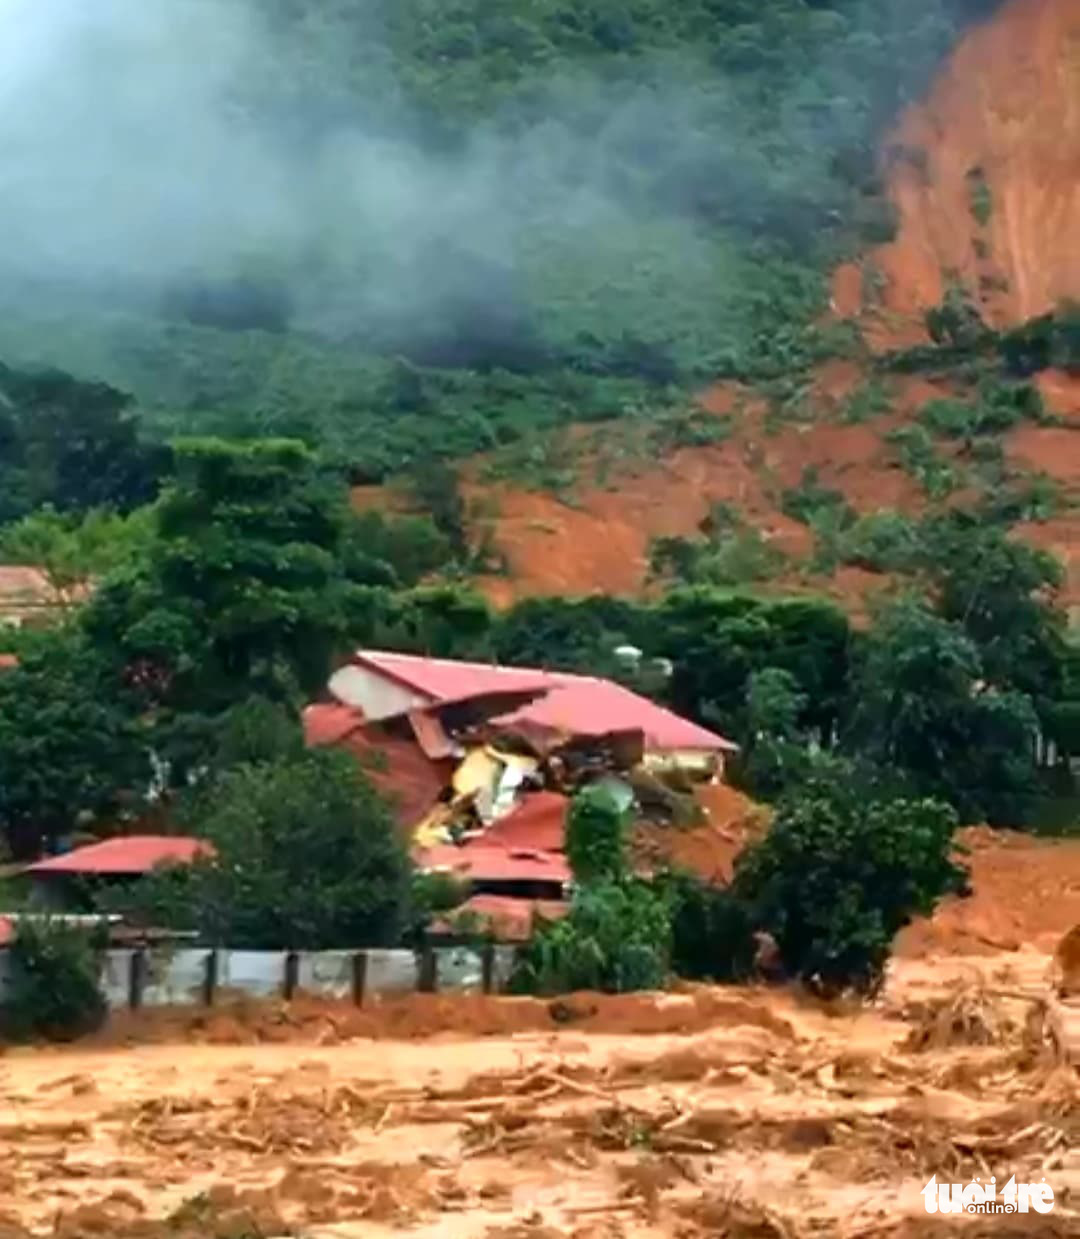 The military station is picture following the landslide in Quang Tri Province, Vietnam, October 18, 2020. Photo: Tuoi Tre Contributor